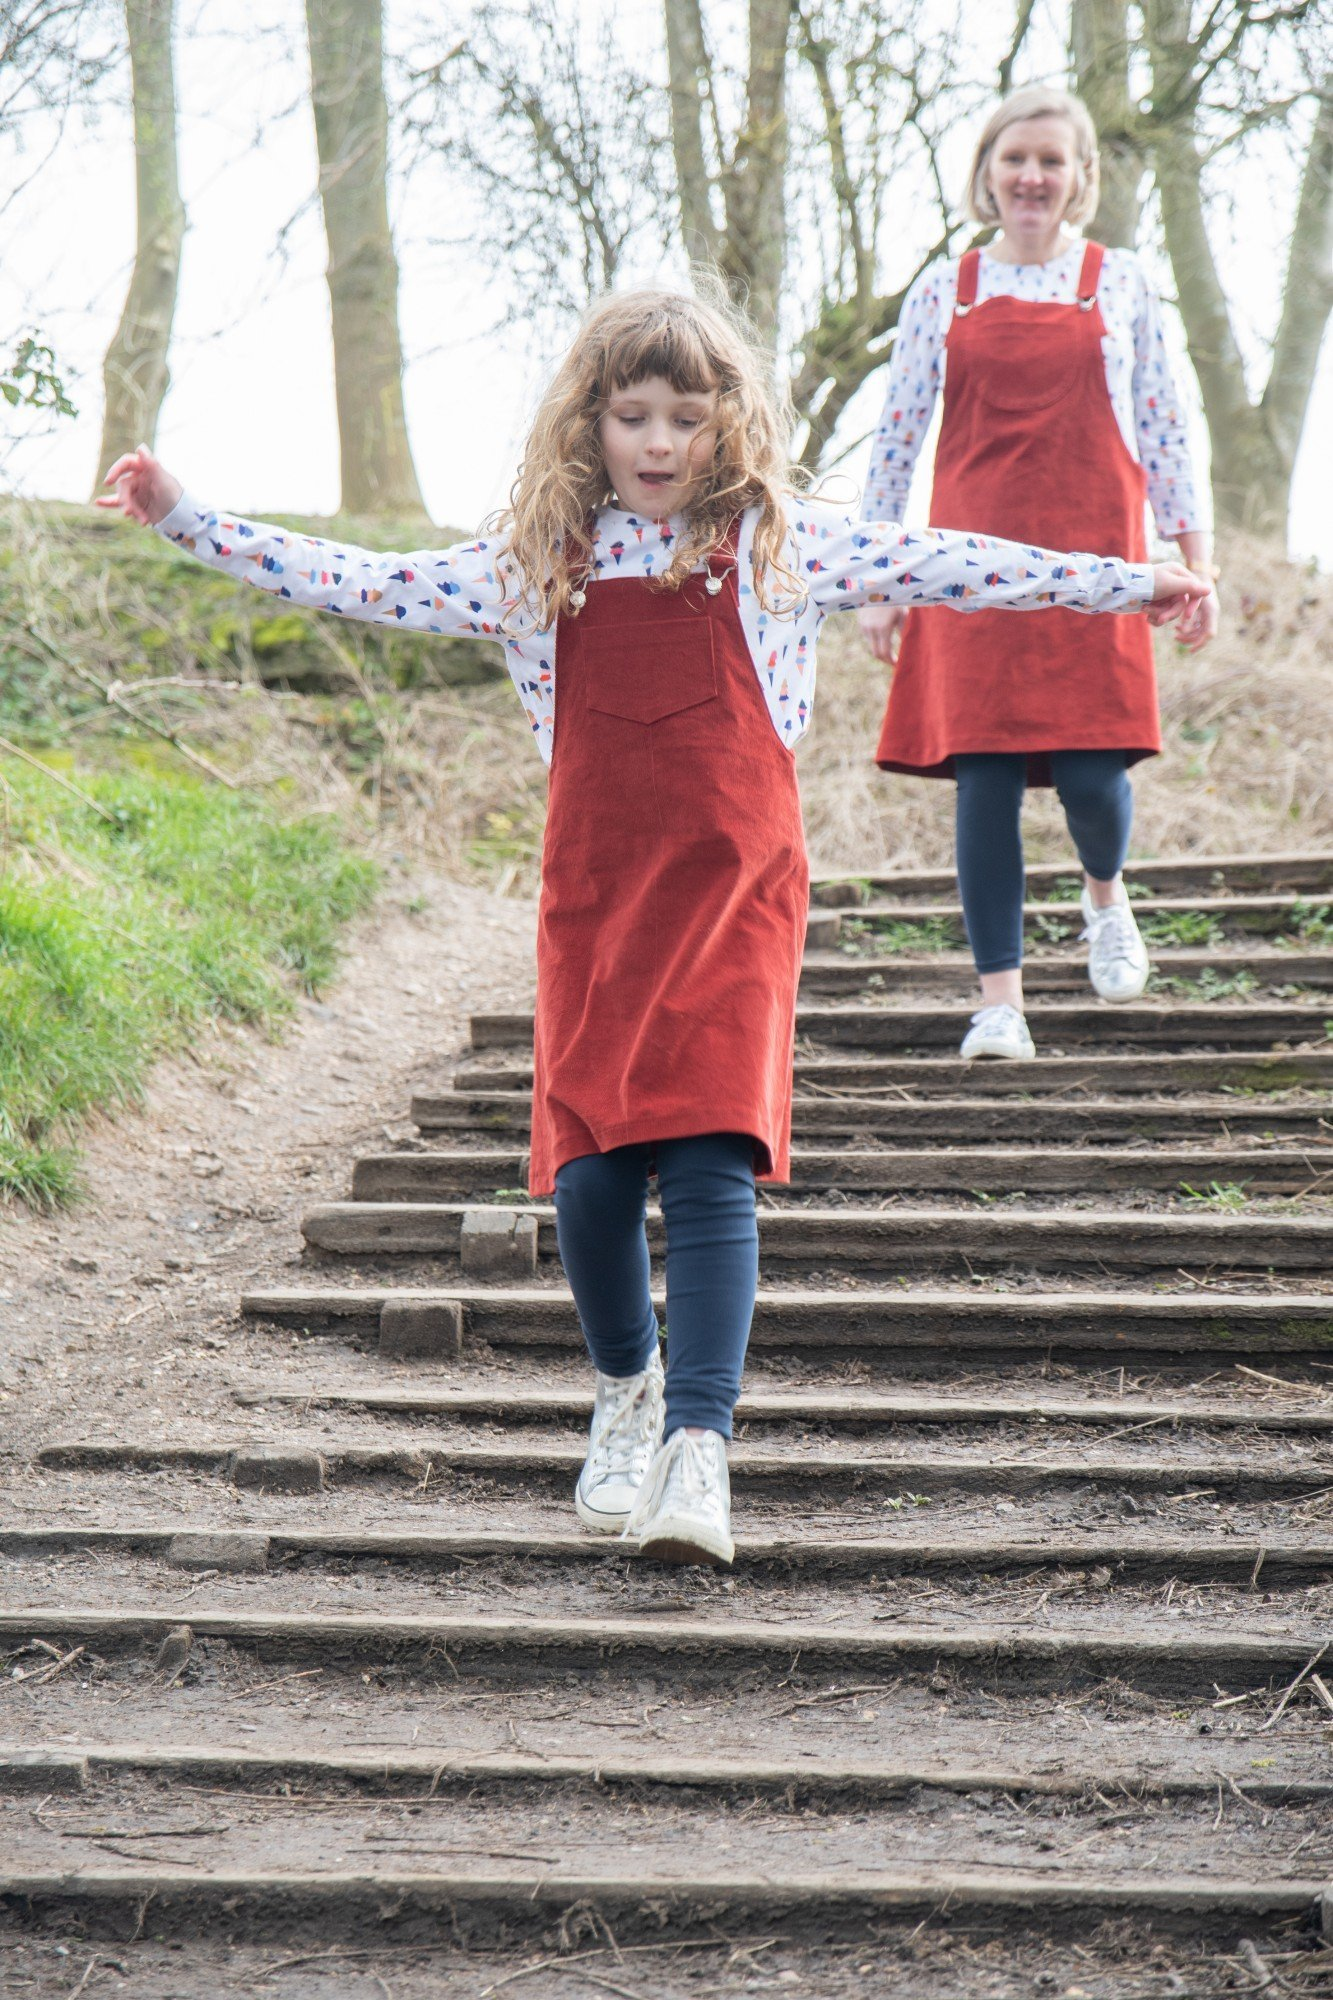 Bobbins and buttons dungaree dress patterns Emily and Mary.